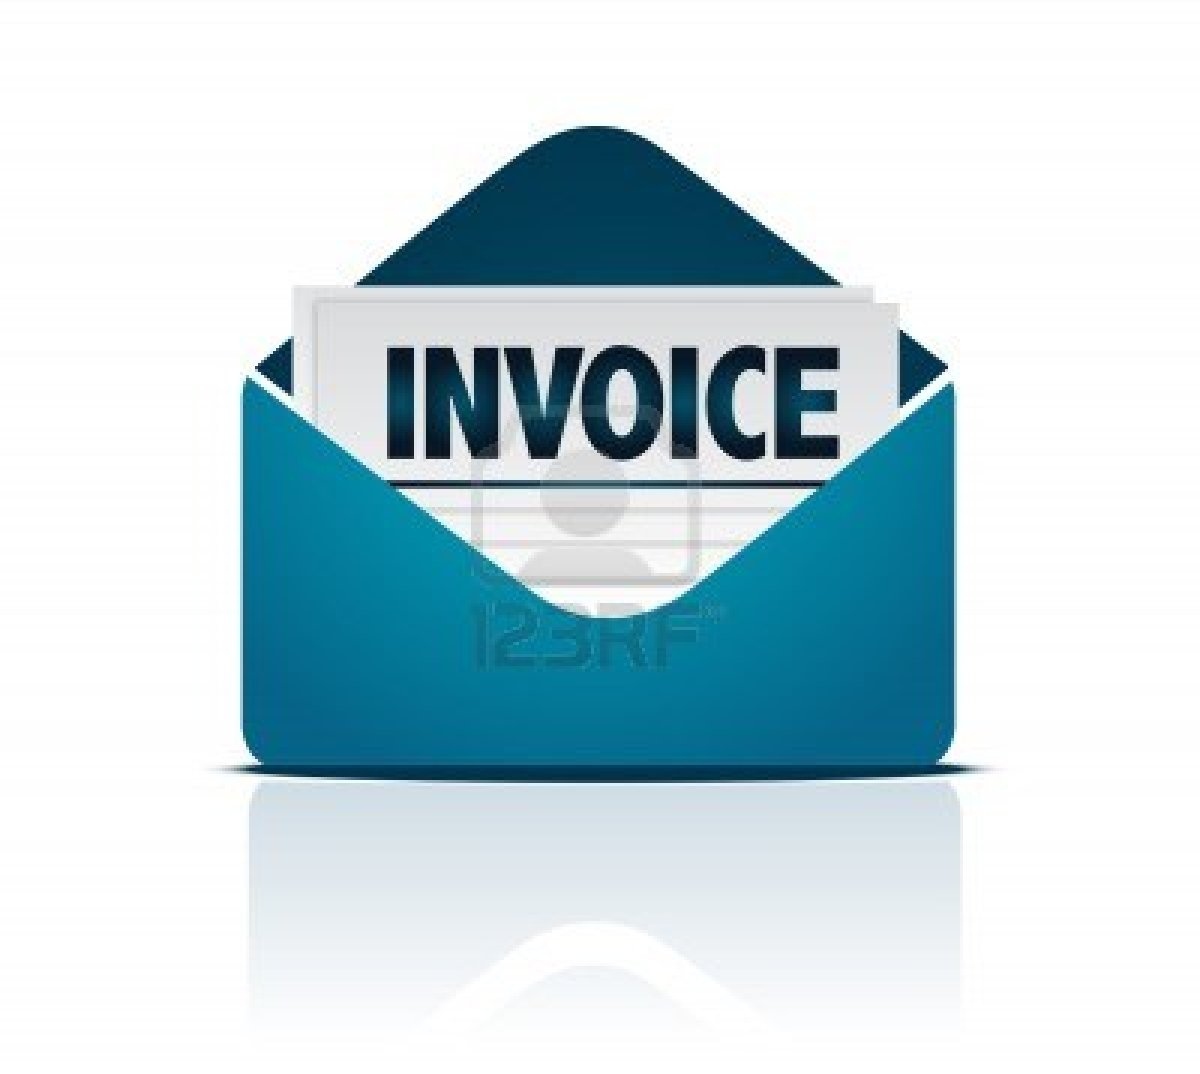 Invoices Windows Icons For image #18820